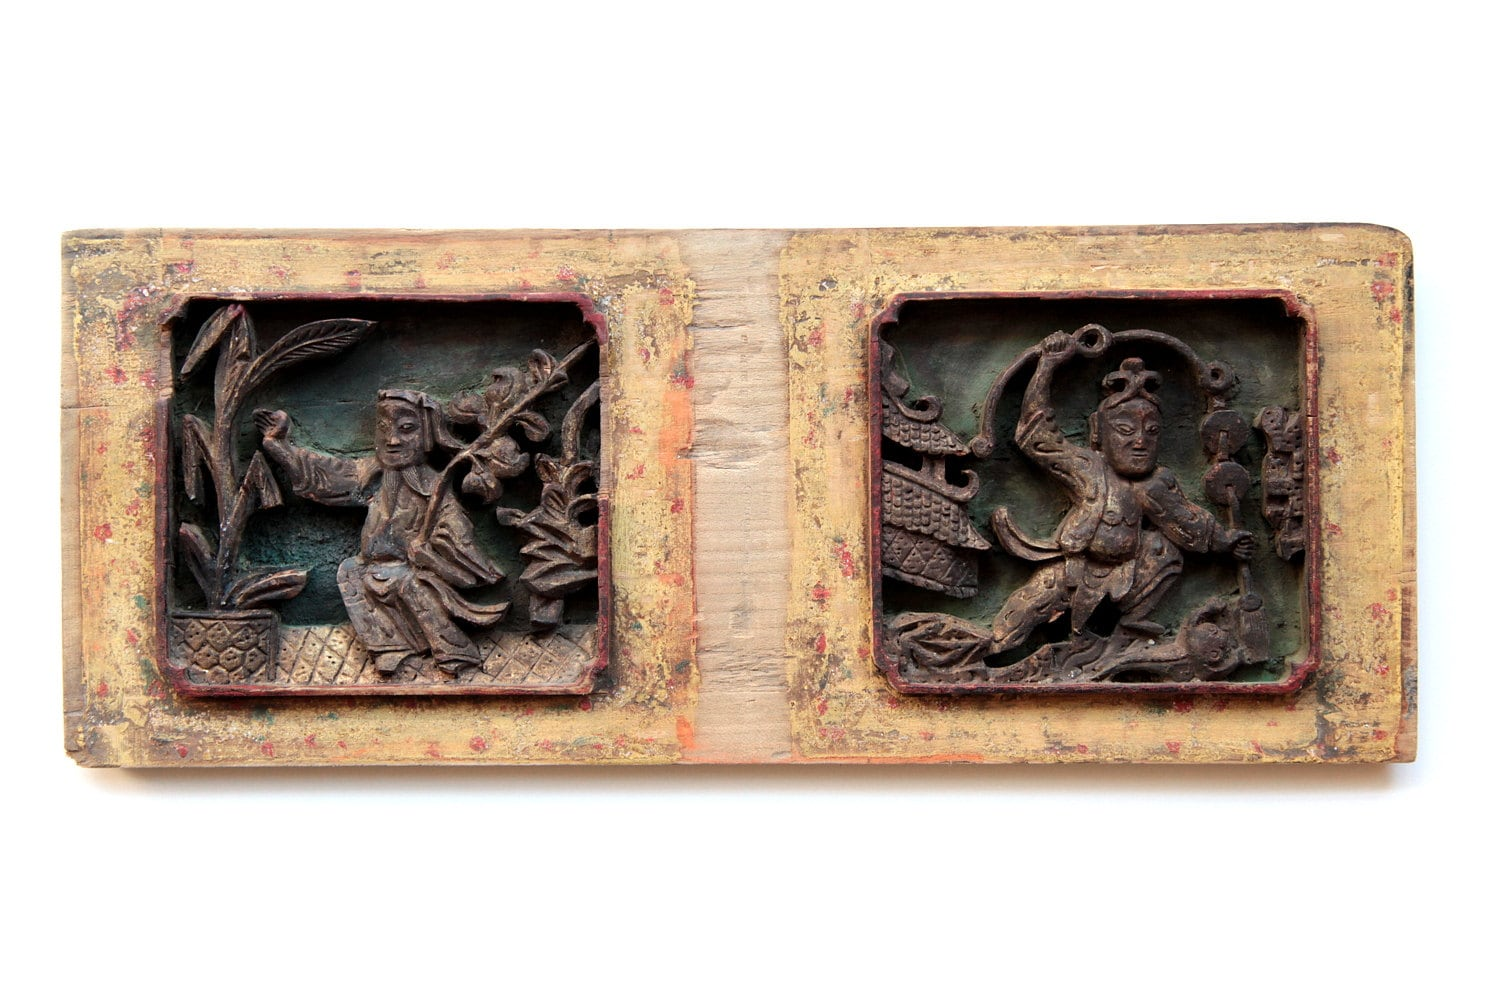 Carved wood panel art of two chinese characters